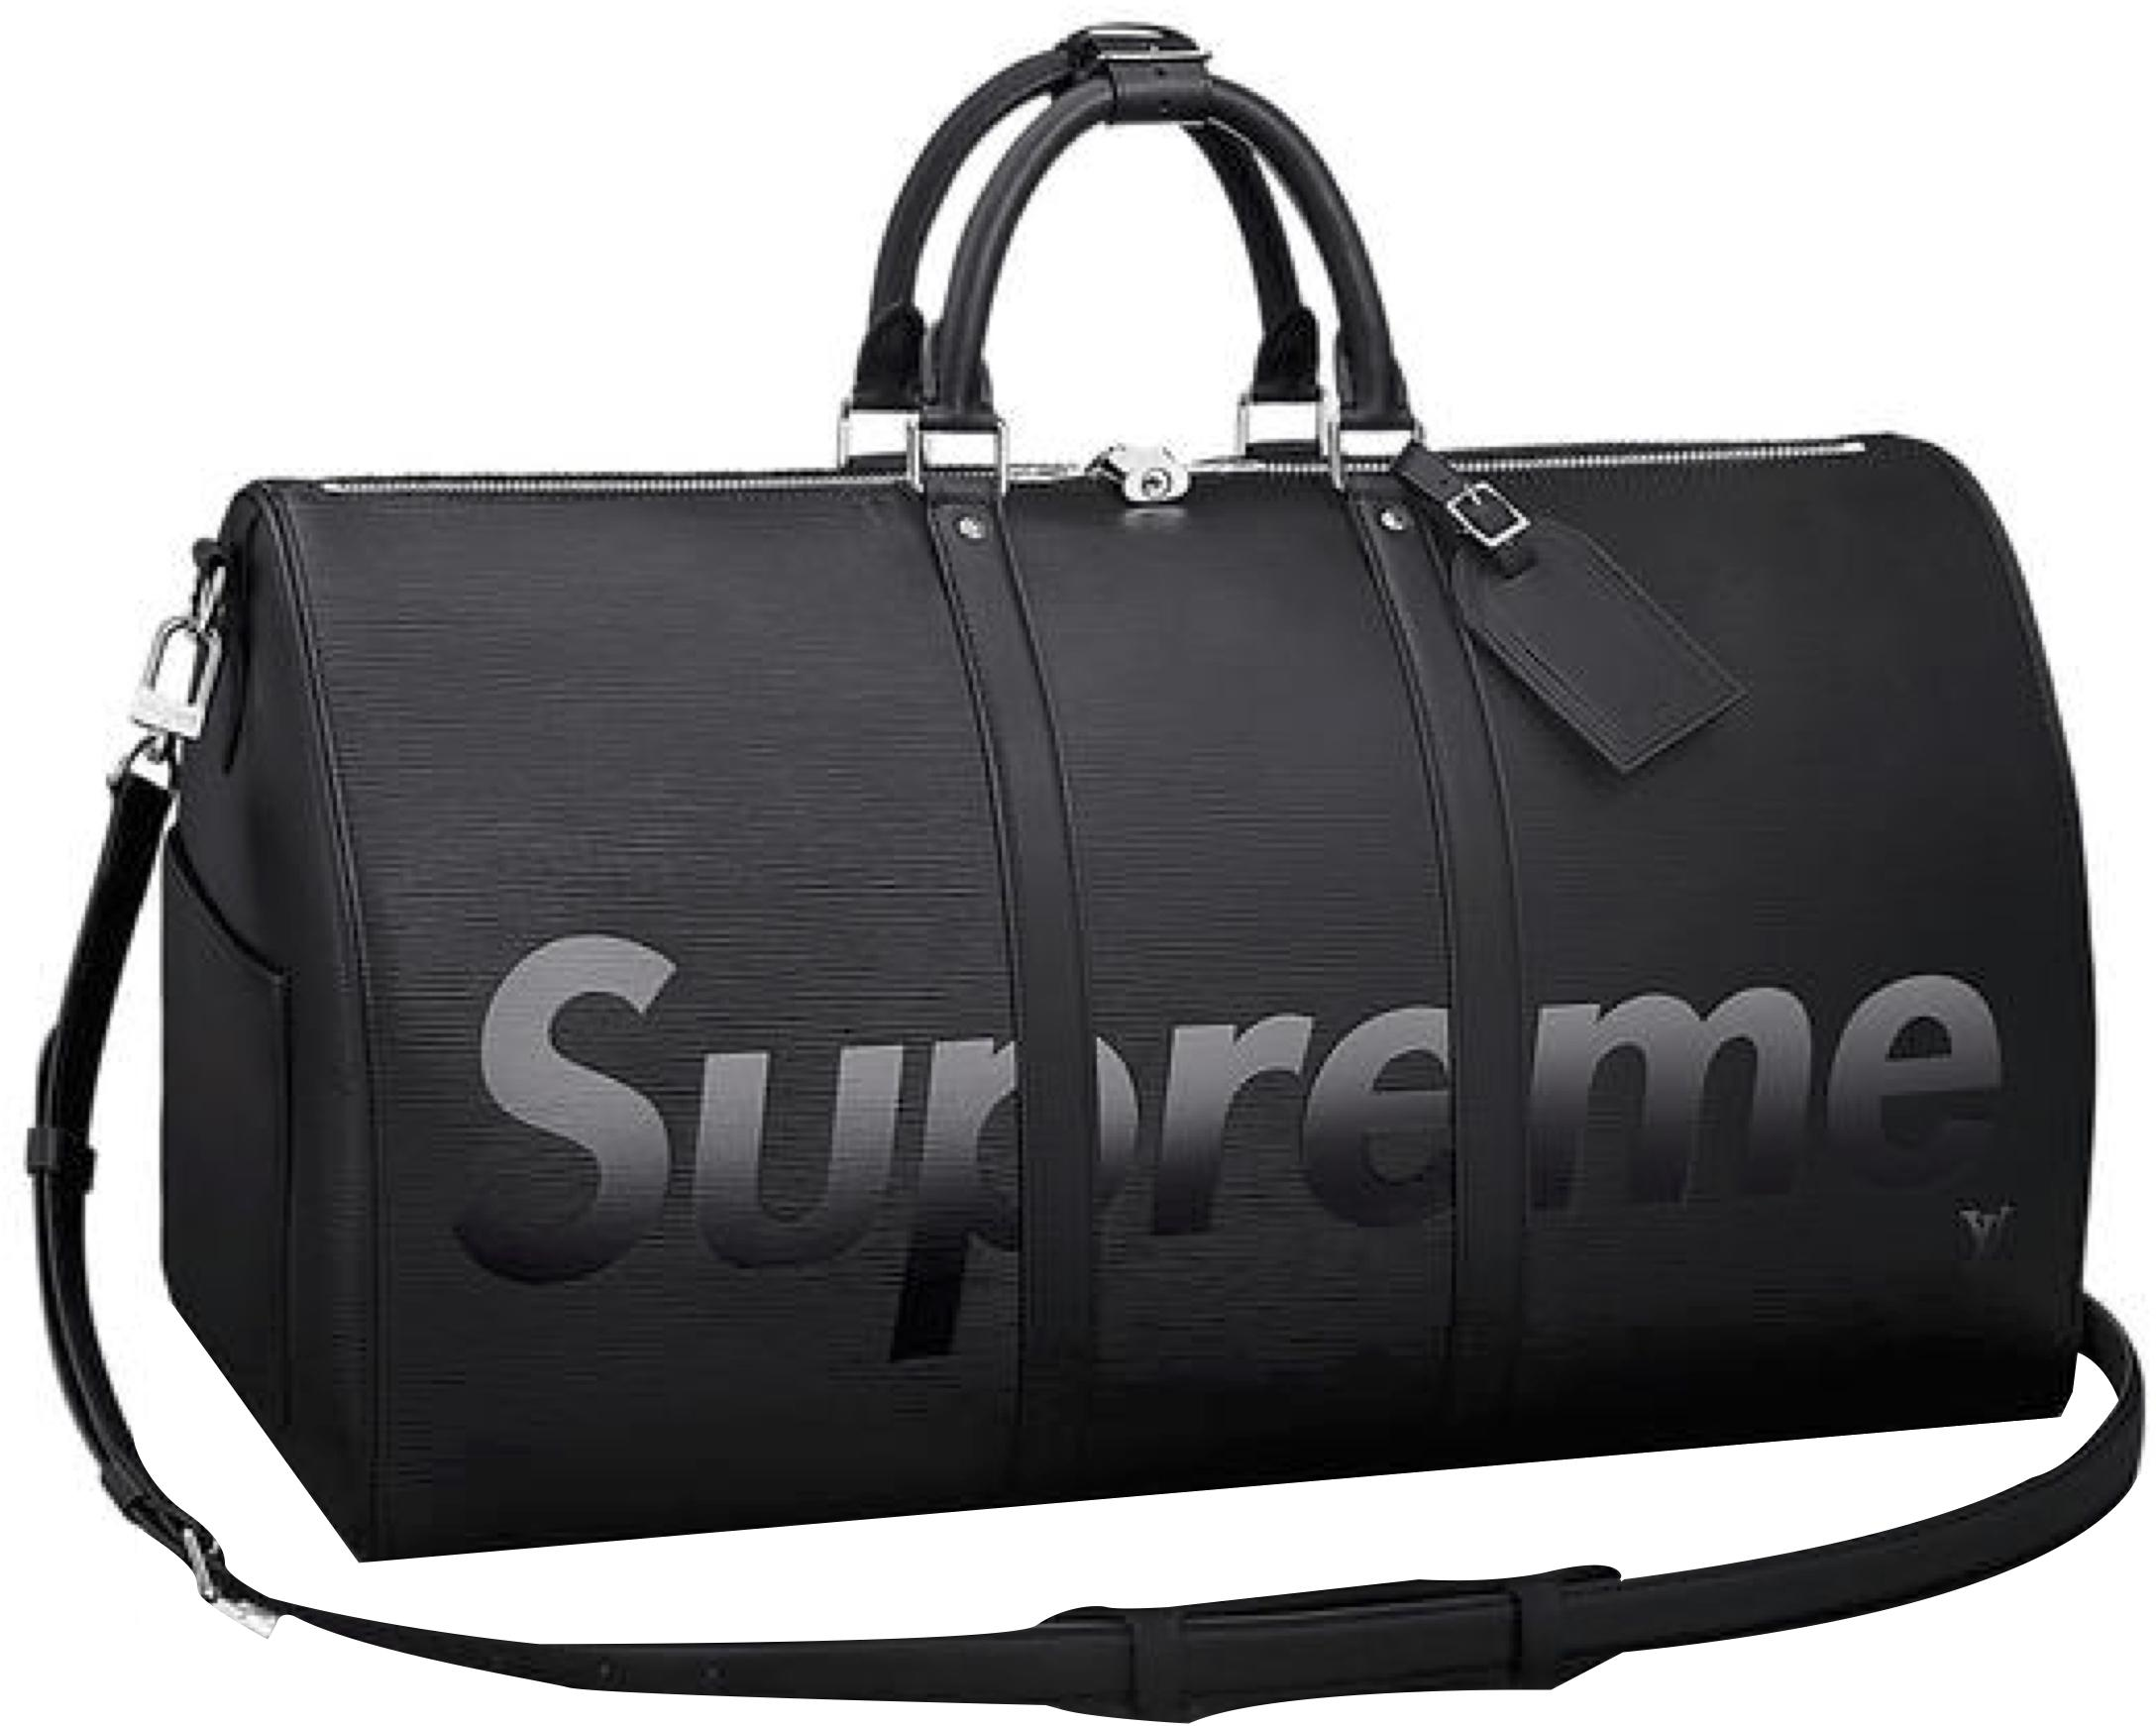 8ade6bf9079 Lyst - Supreme Louis Vuitton X Keepall Bandouliere Epi 55 Black in Black